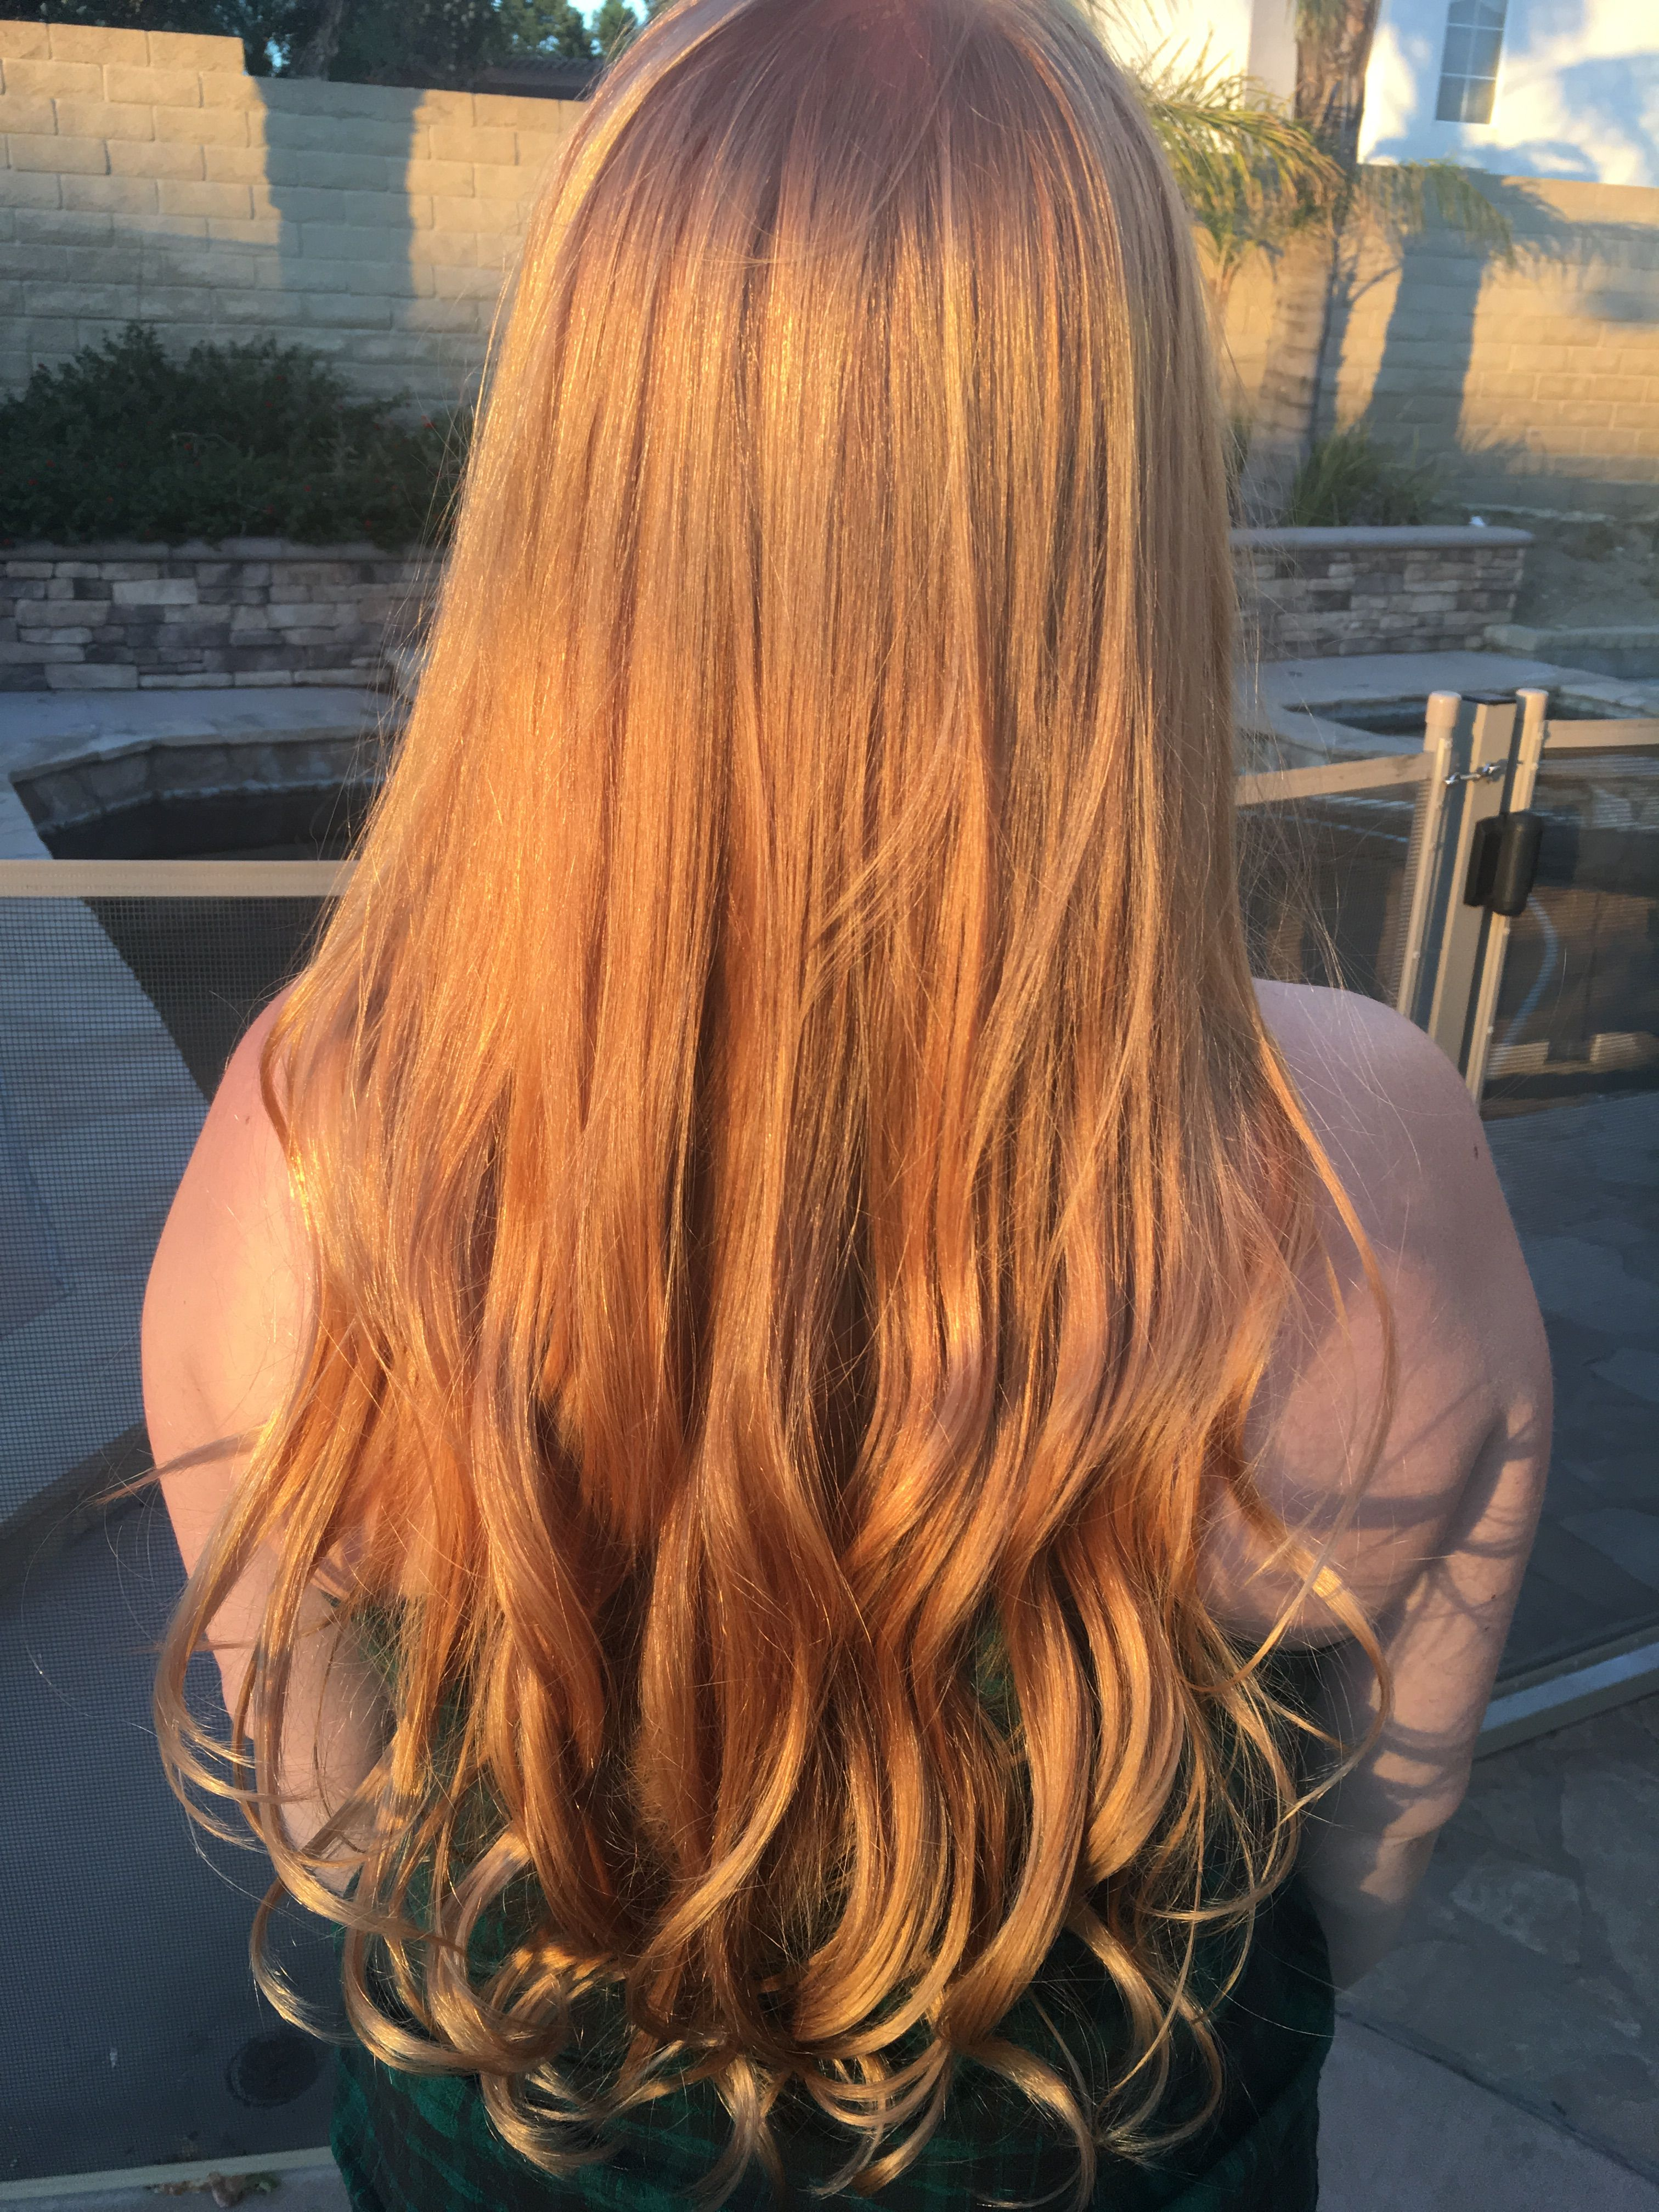 Copper Blonde In Sunset Light Strawberry Blonde Balayage Hair